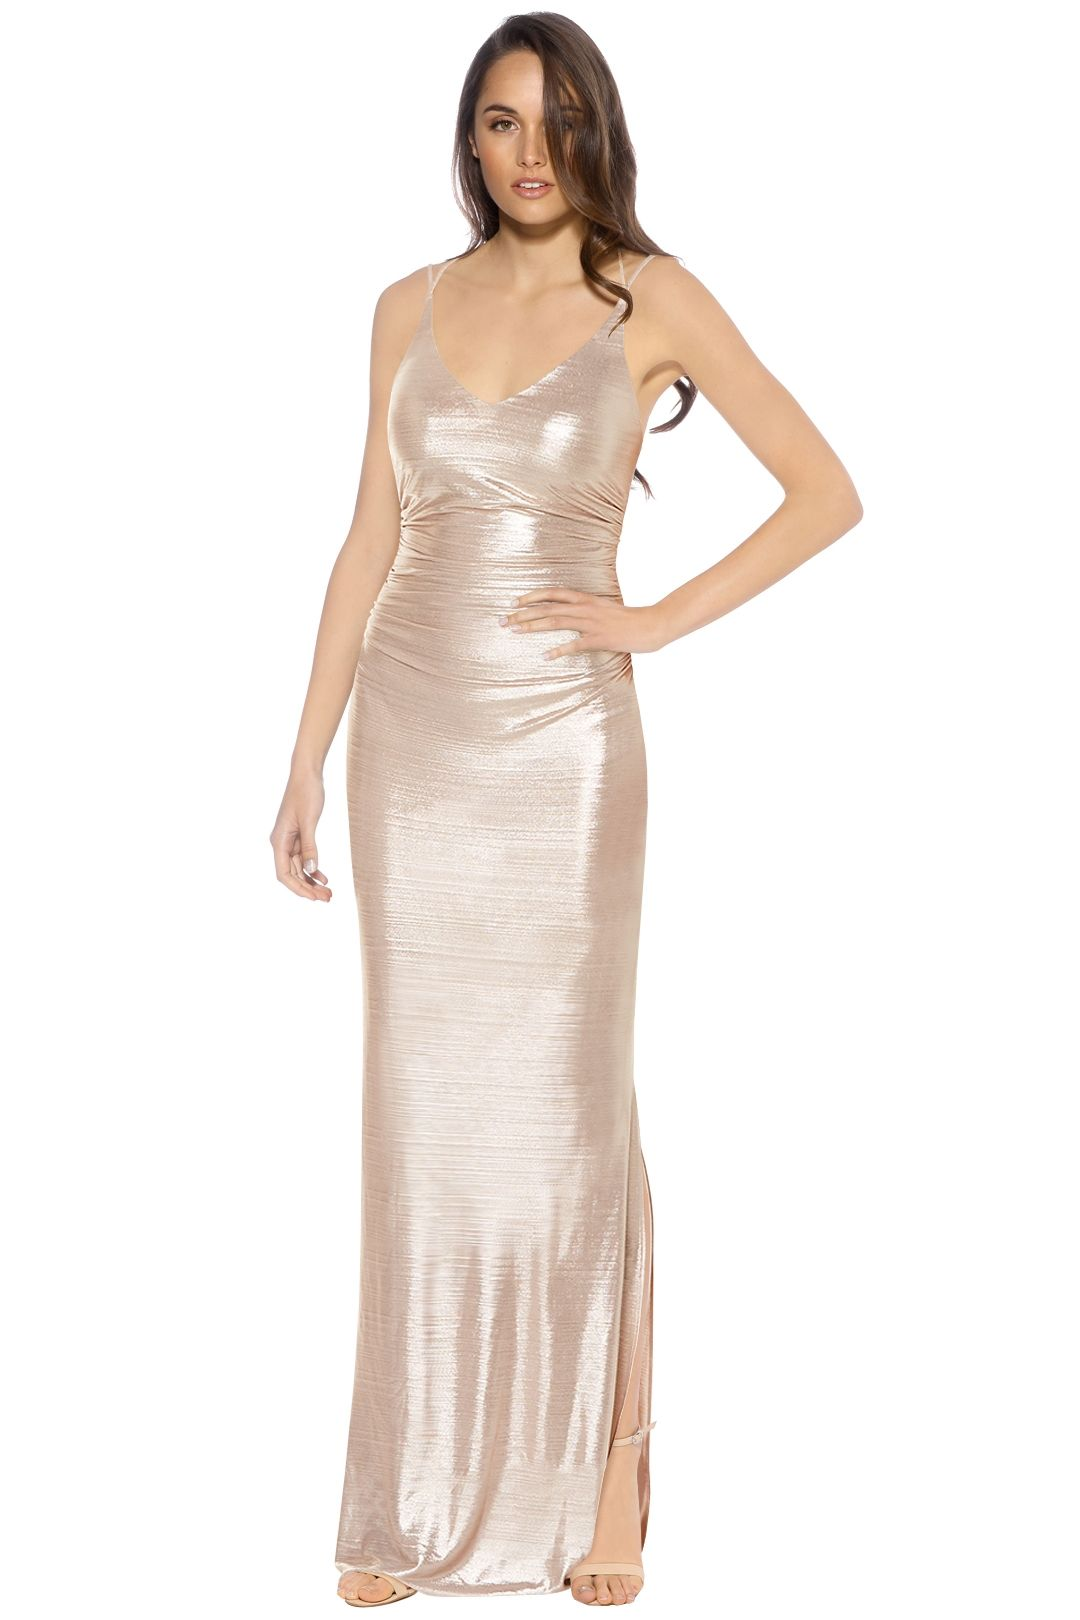 Laundry by Shelli Segal - Foil Knit Gown - Blush - Front